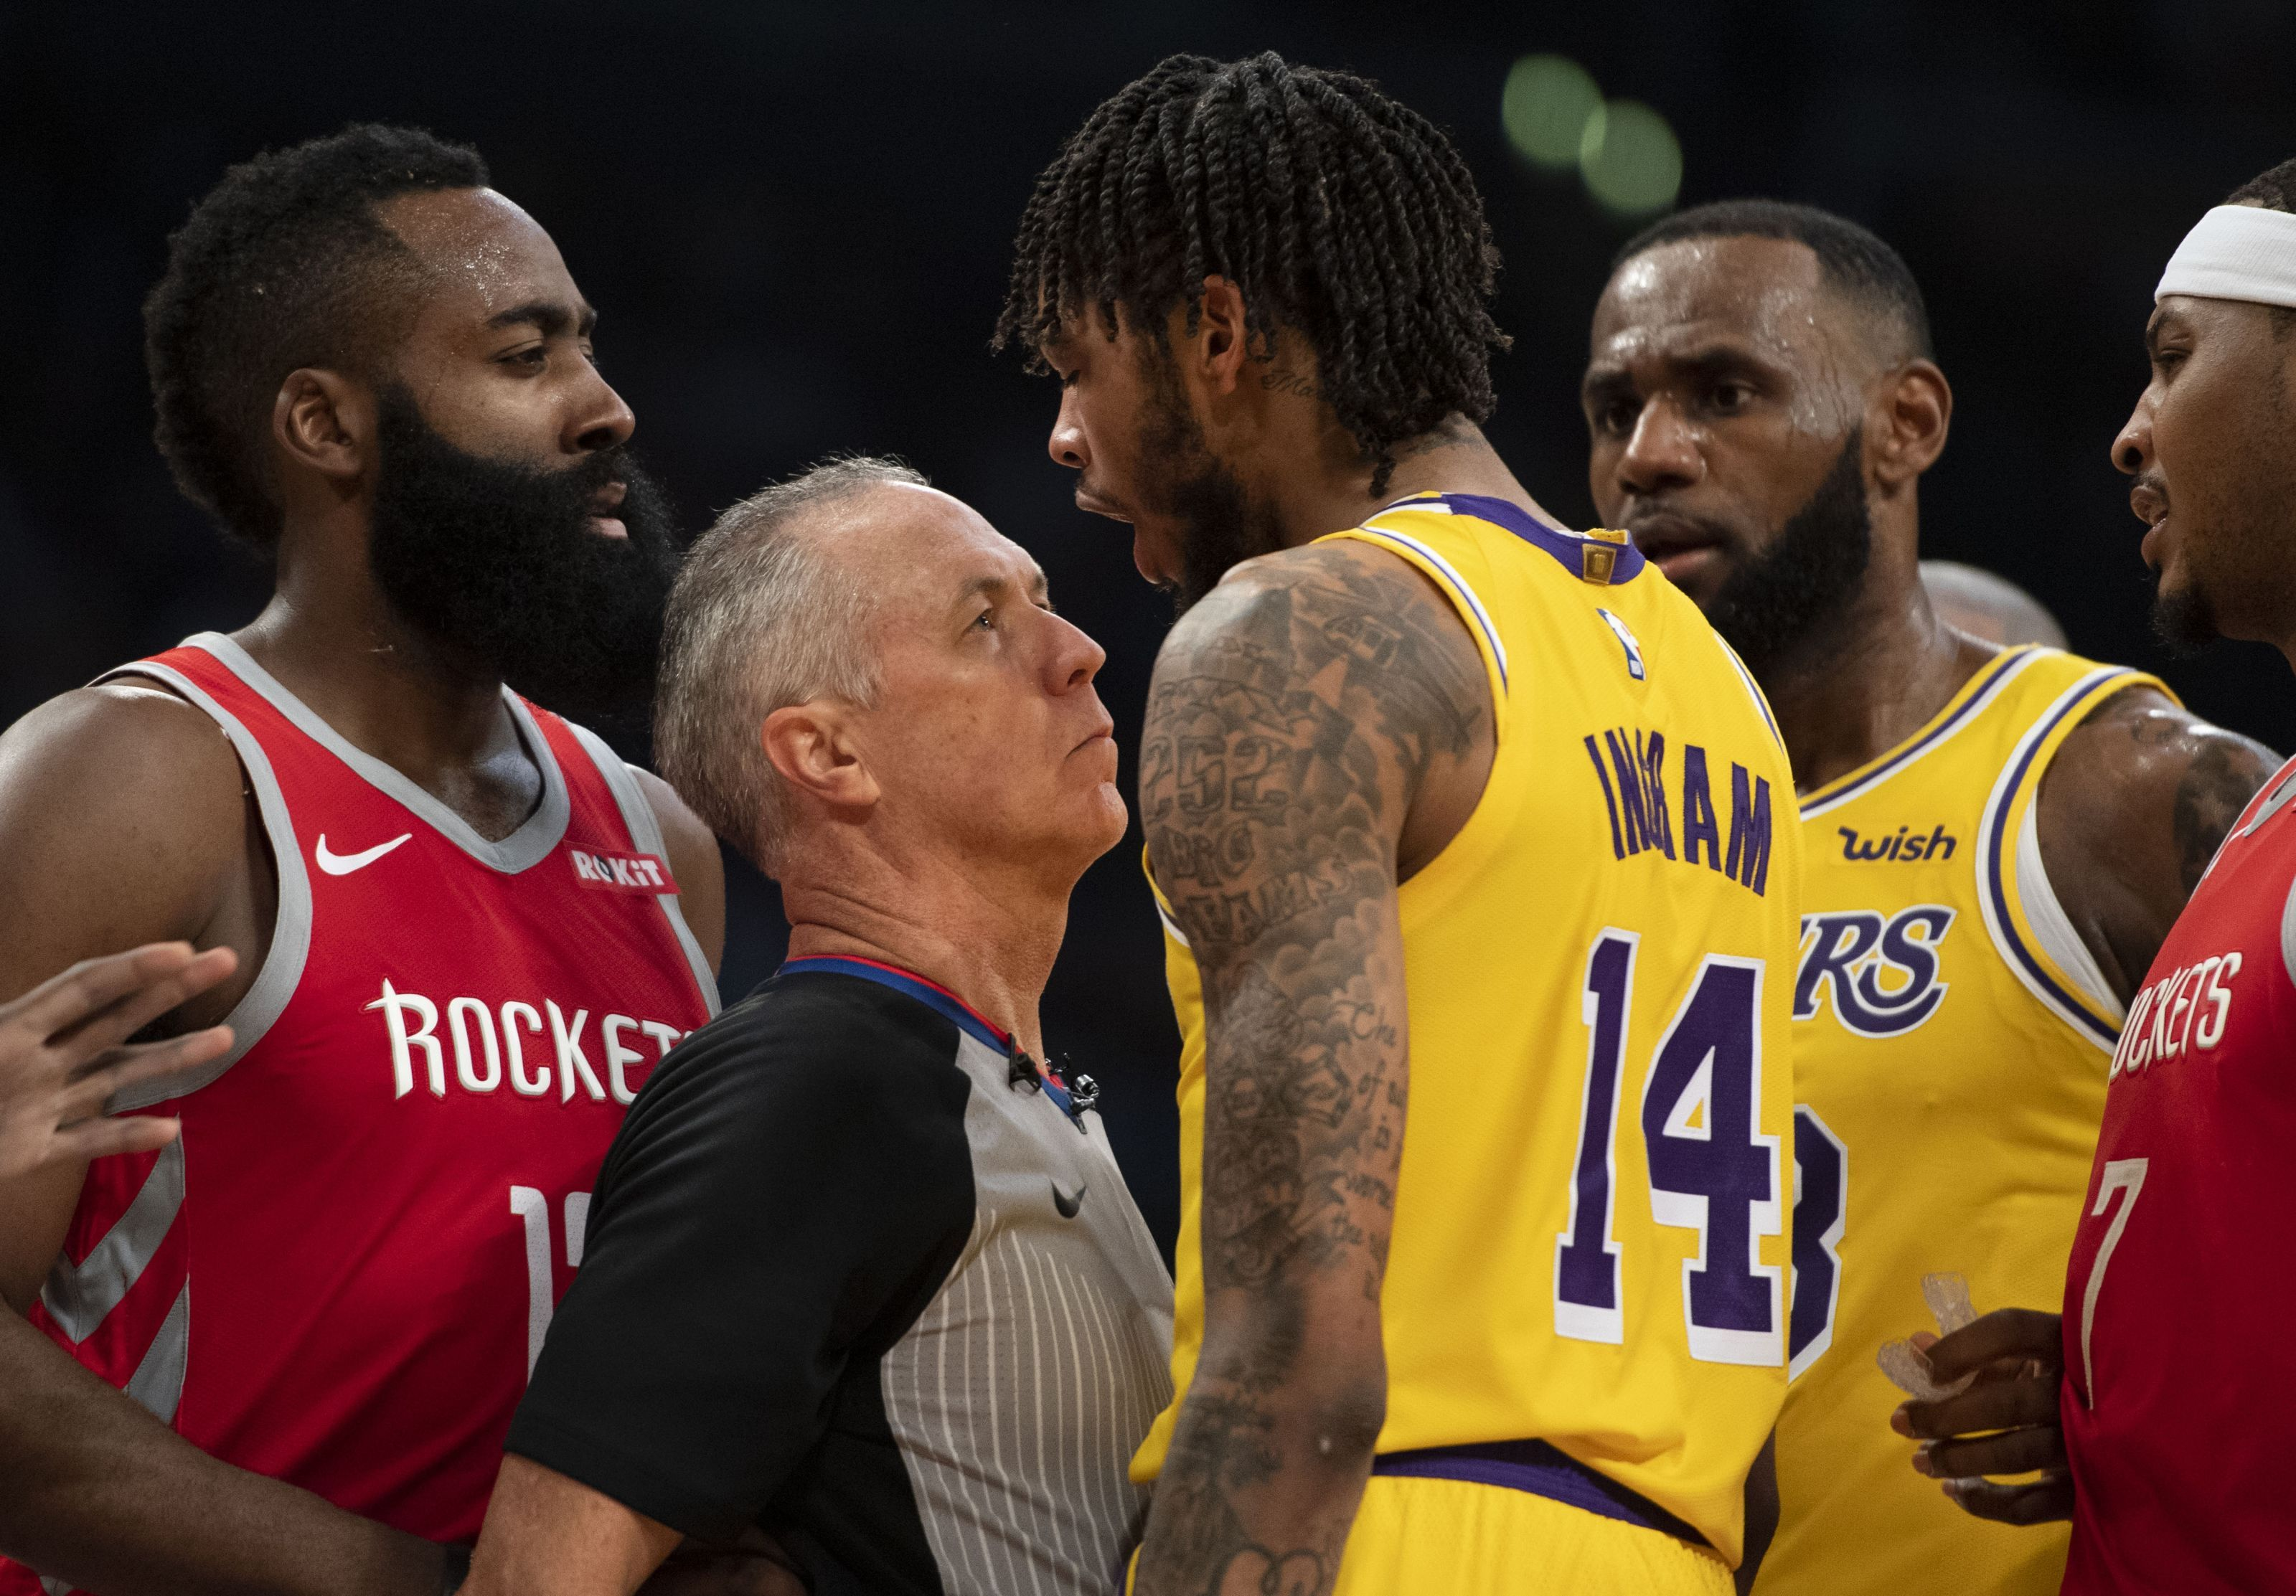 Los Angeles Lakers News People Are Missing The Point About The Fight Los Angeles Lakers Lakers Ingram